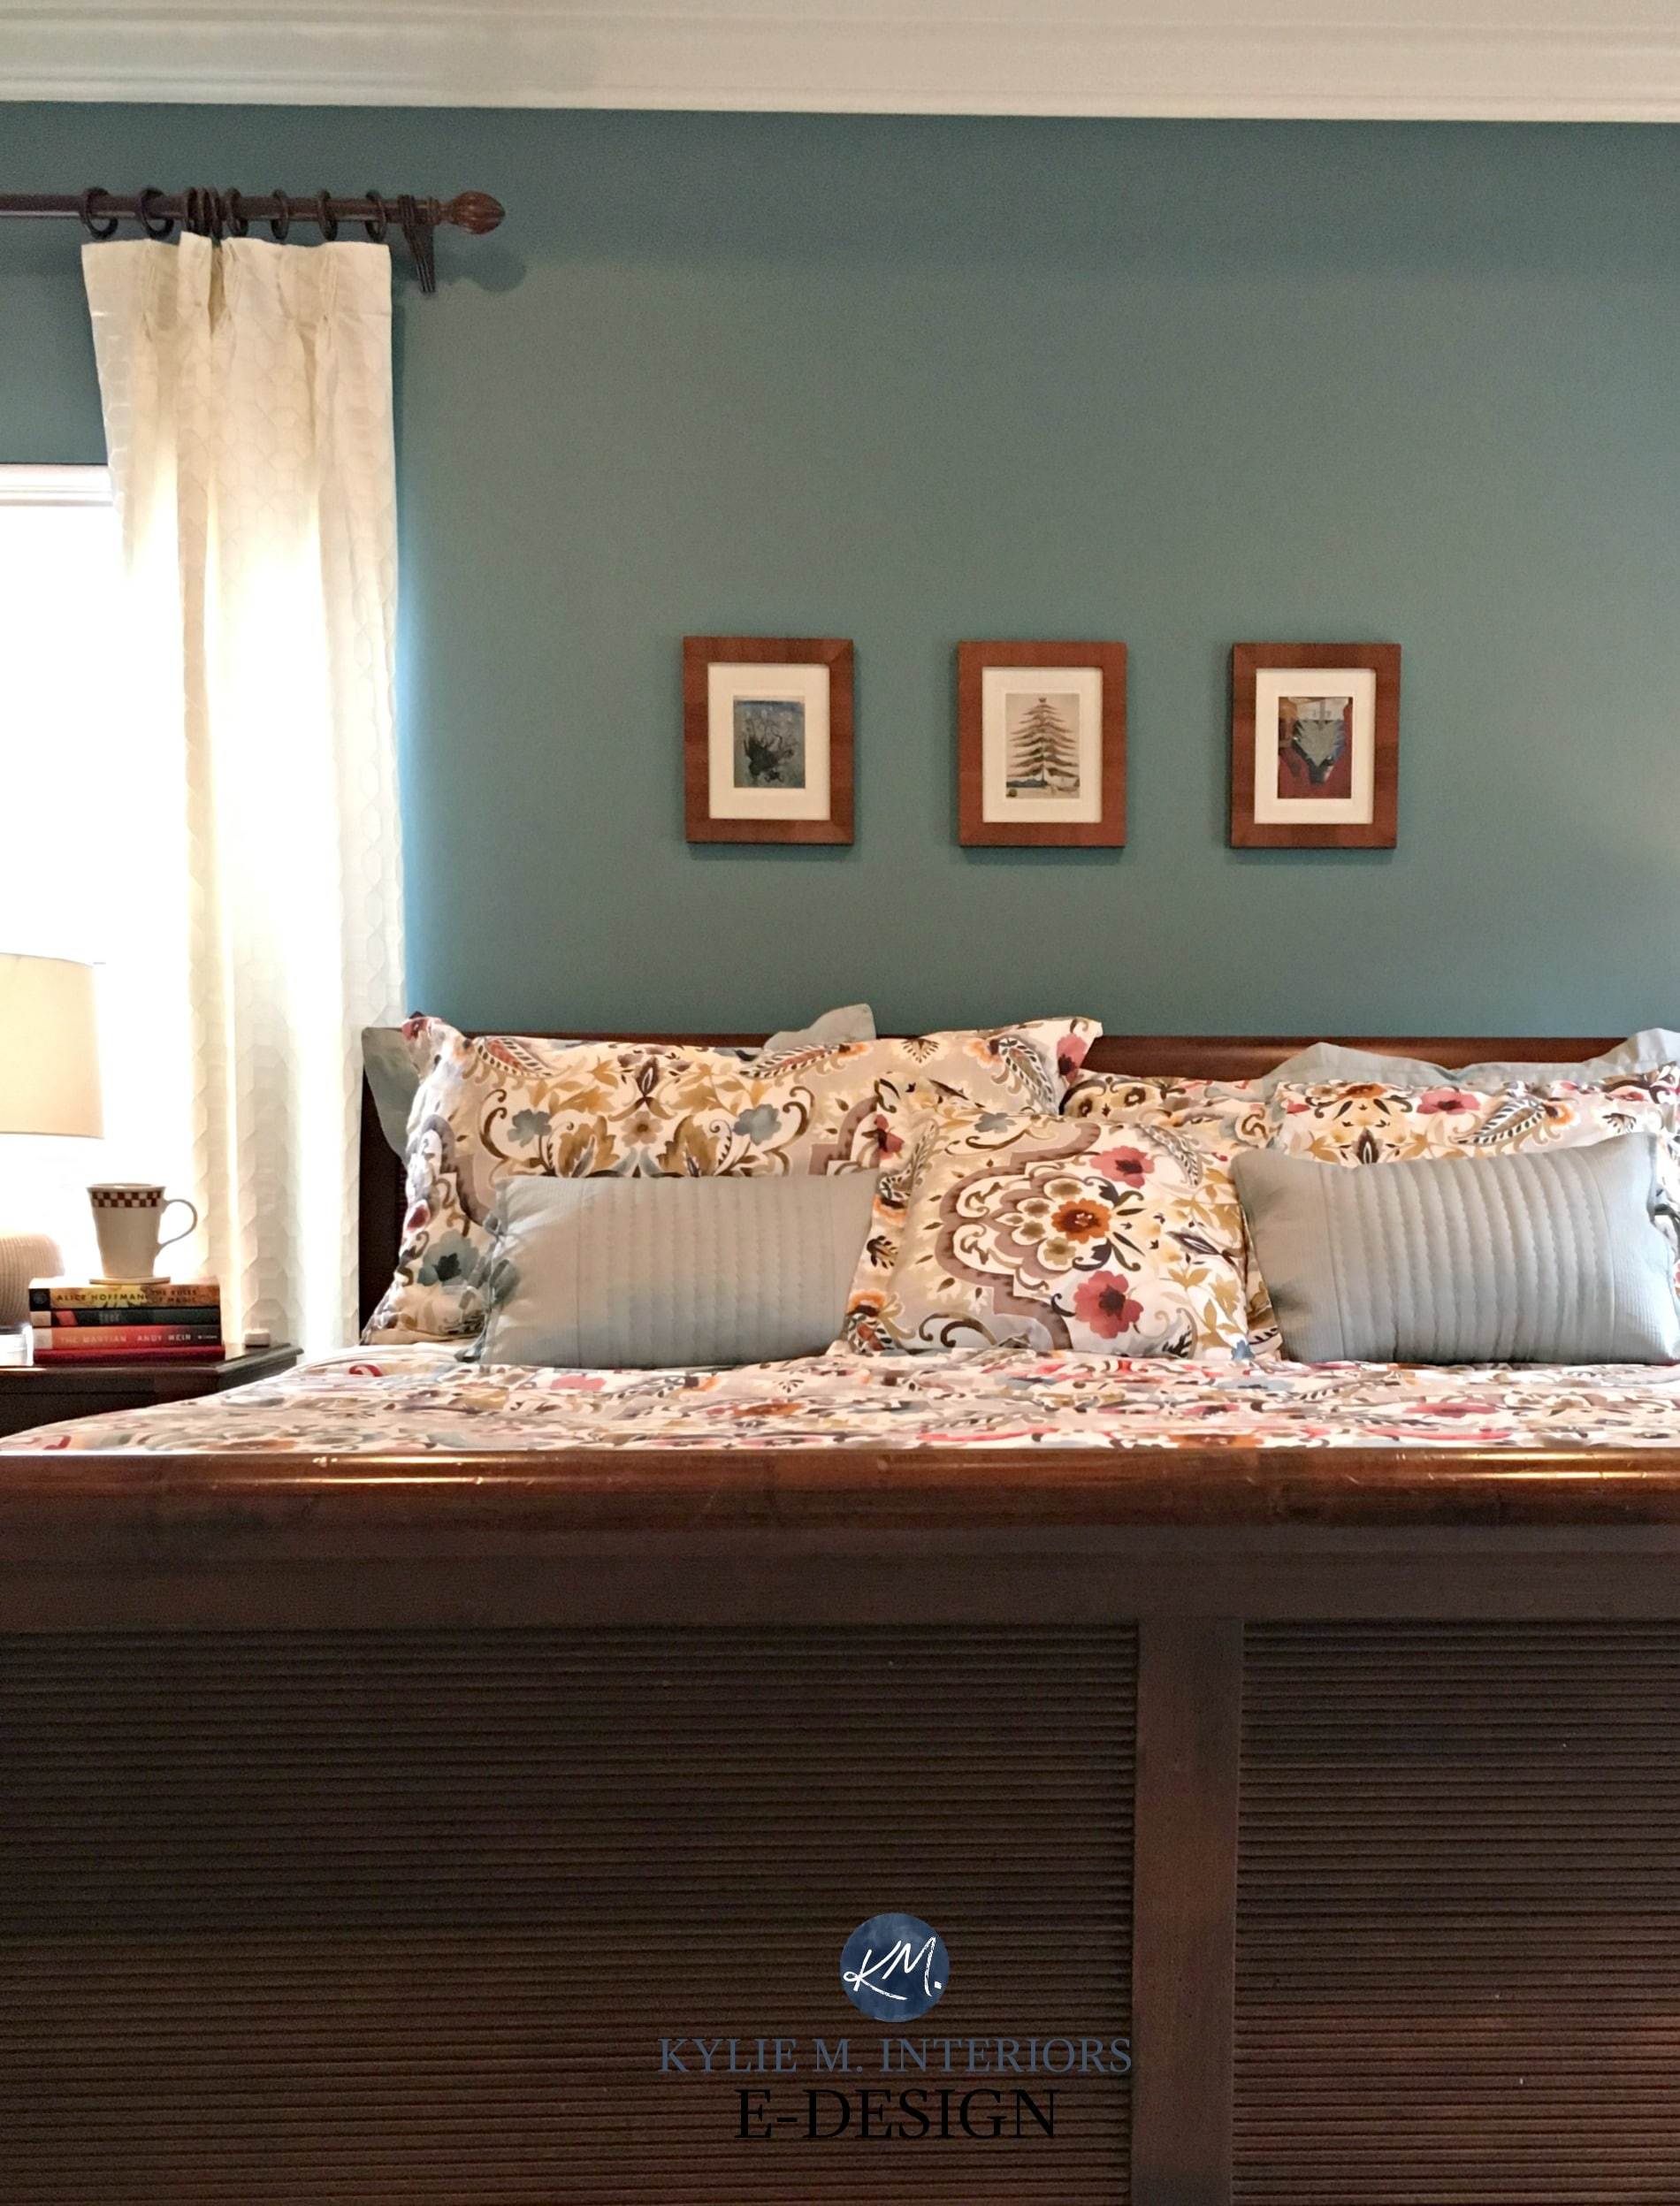 Sherwin Williams Moody Blue With Cherry Wood Bedroom Furniture, Kylie M  E Design, Online Paint Color Consultant